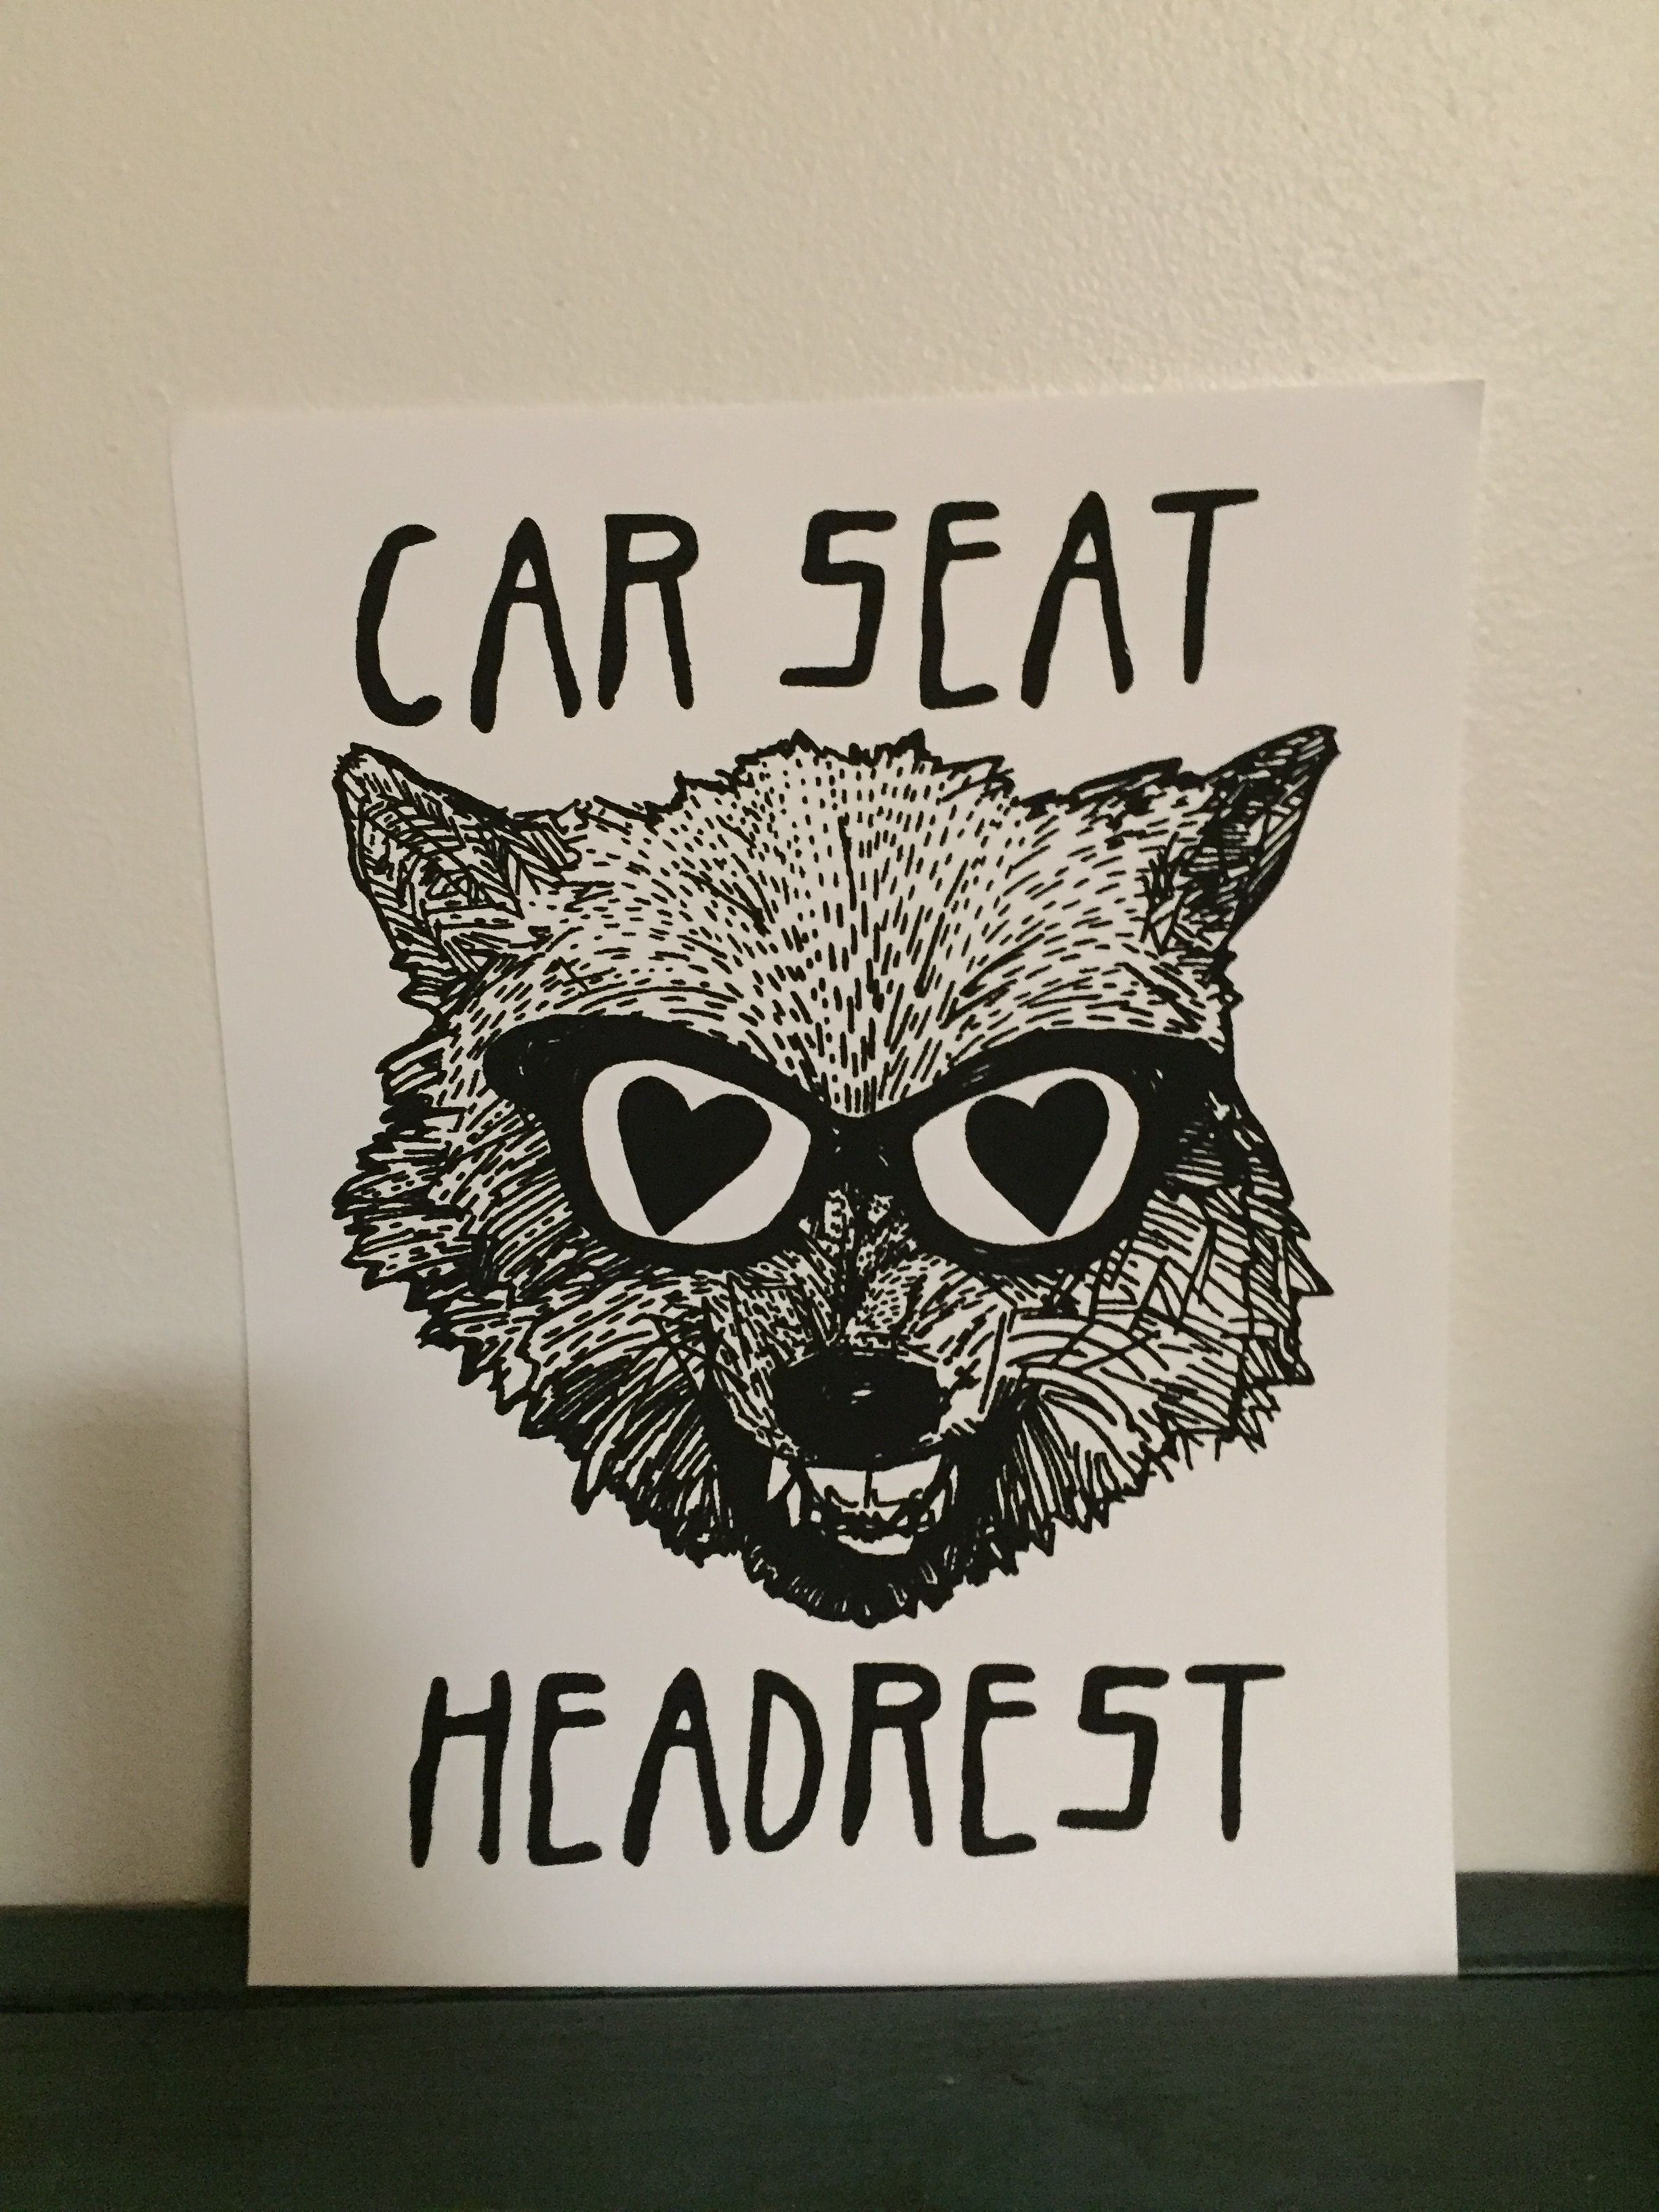 Now you can add a handmade screenprinted Car Seat Headrest